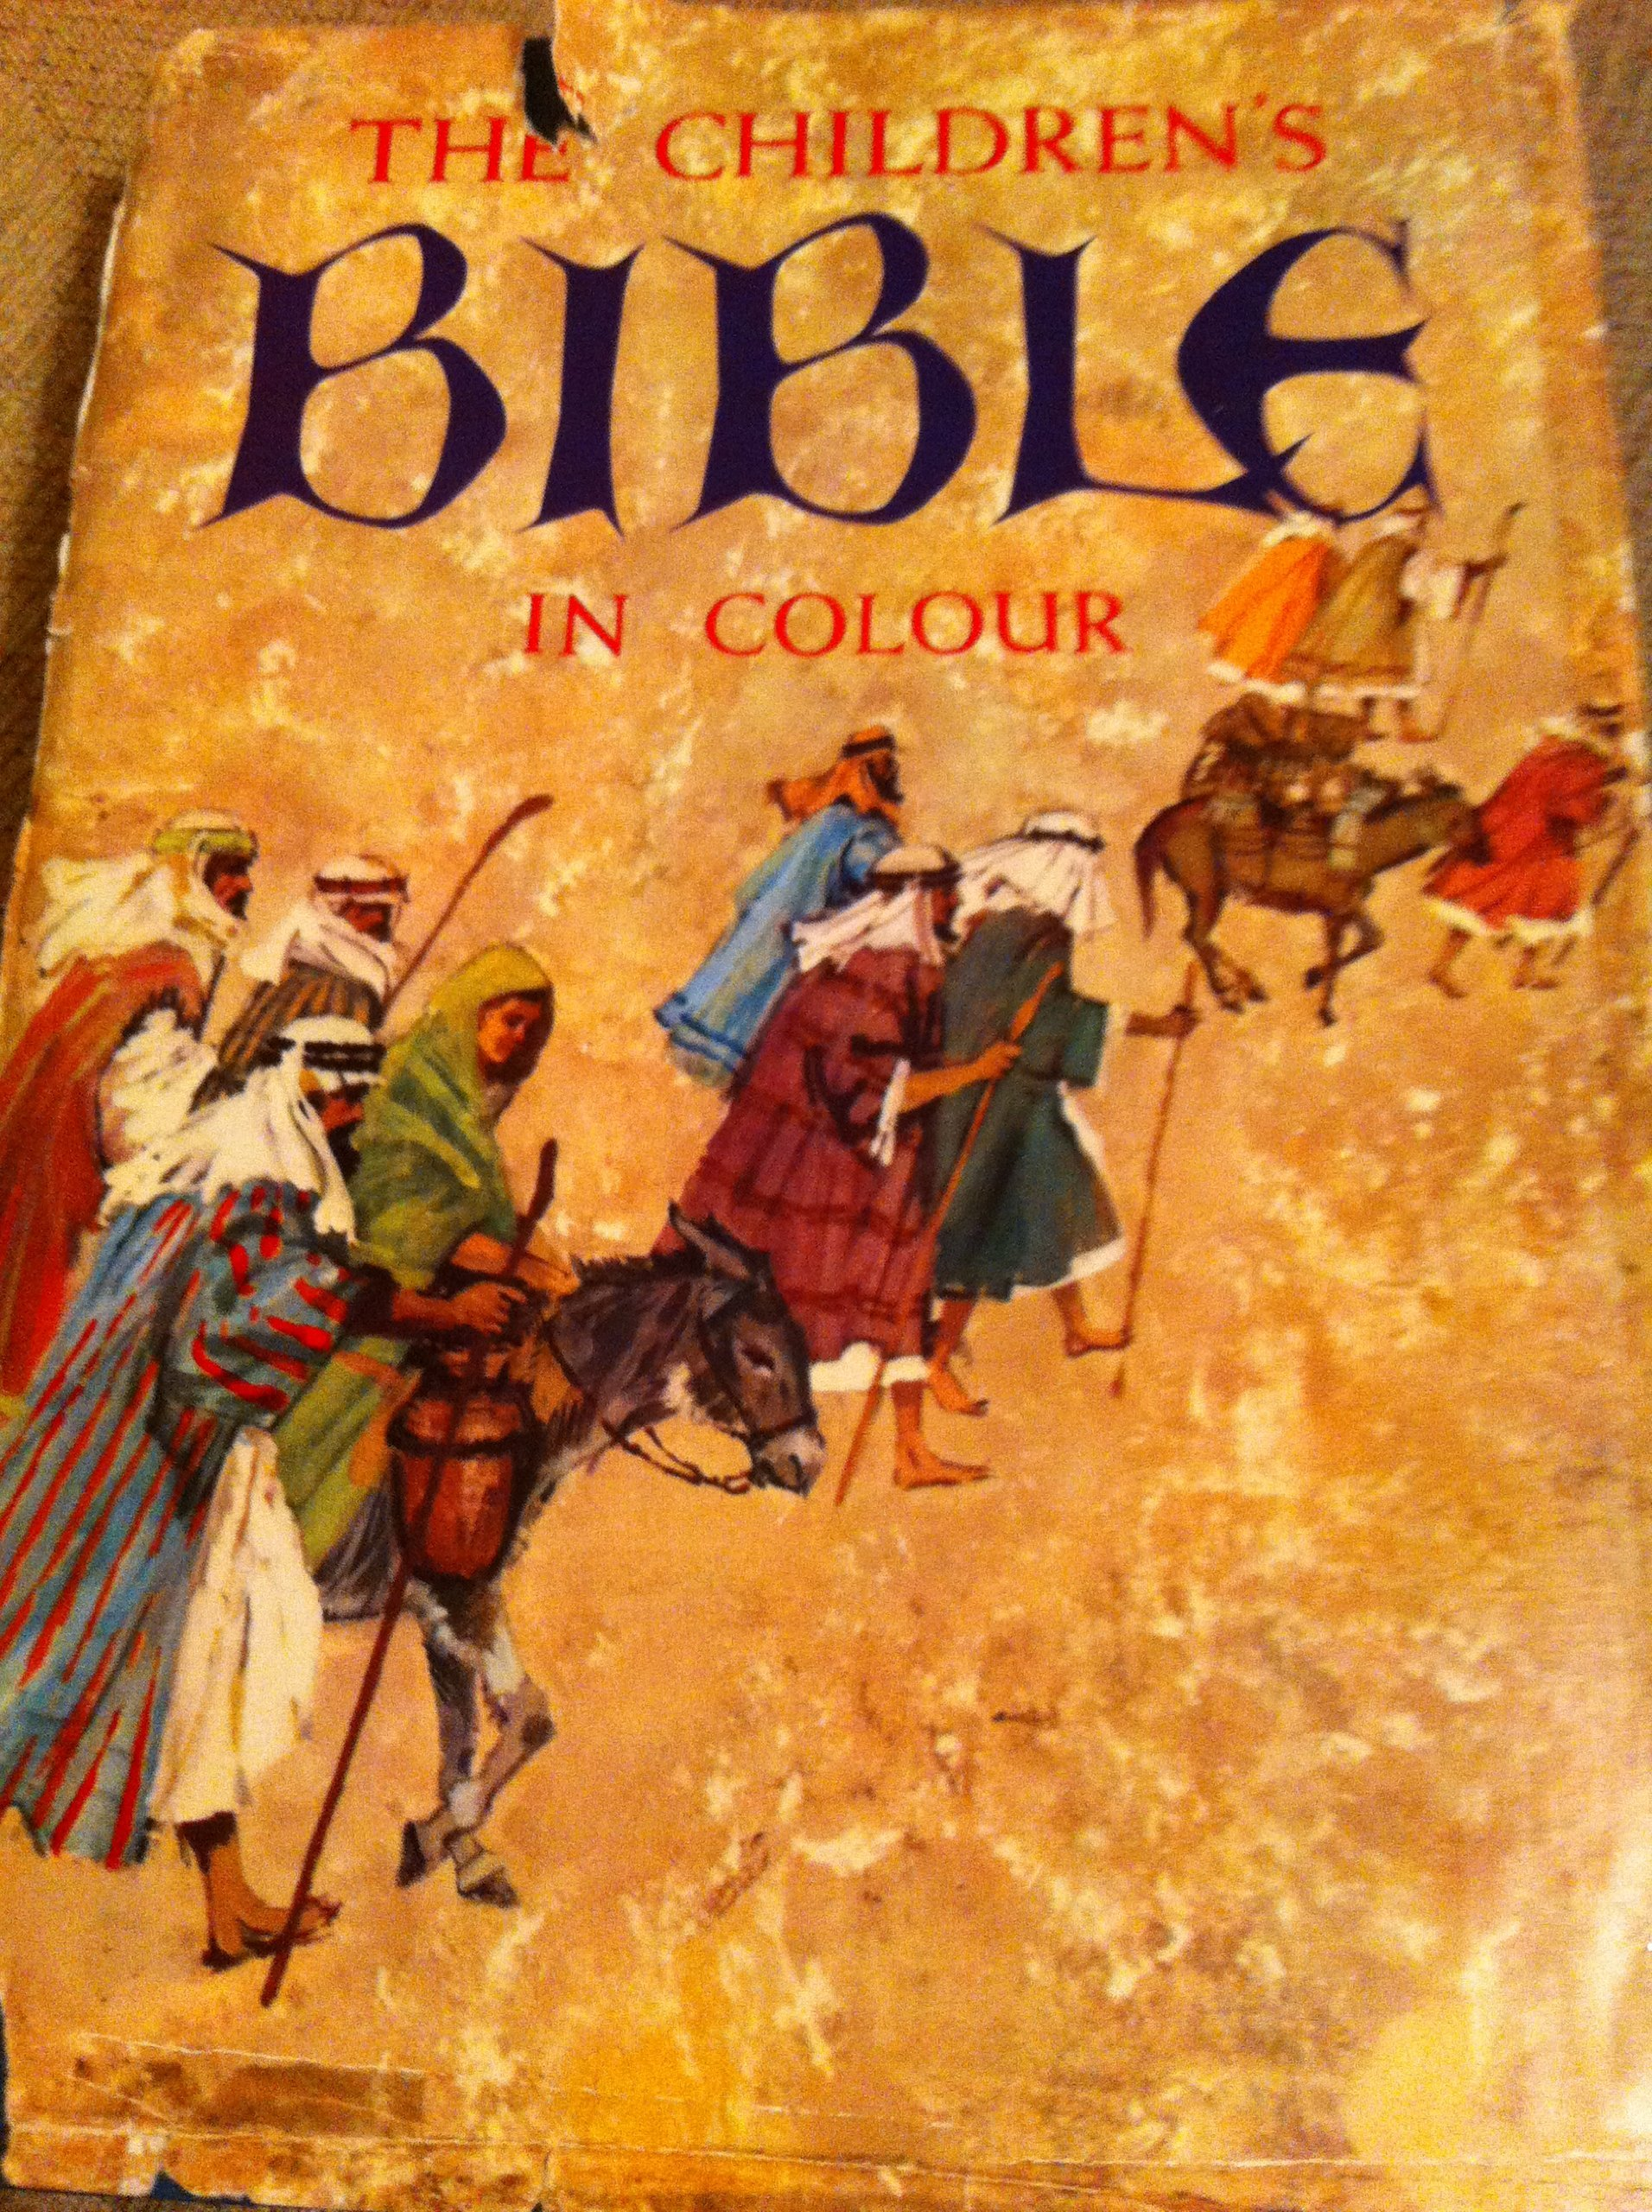 The Children's Bible in Colour: Amazon.co.uk: Author: Books